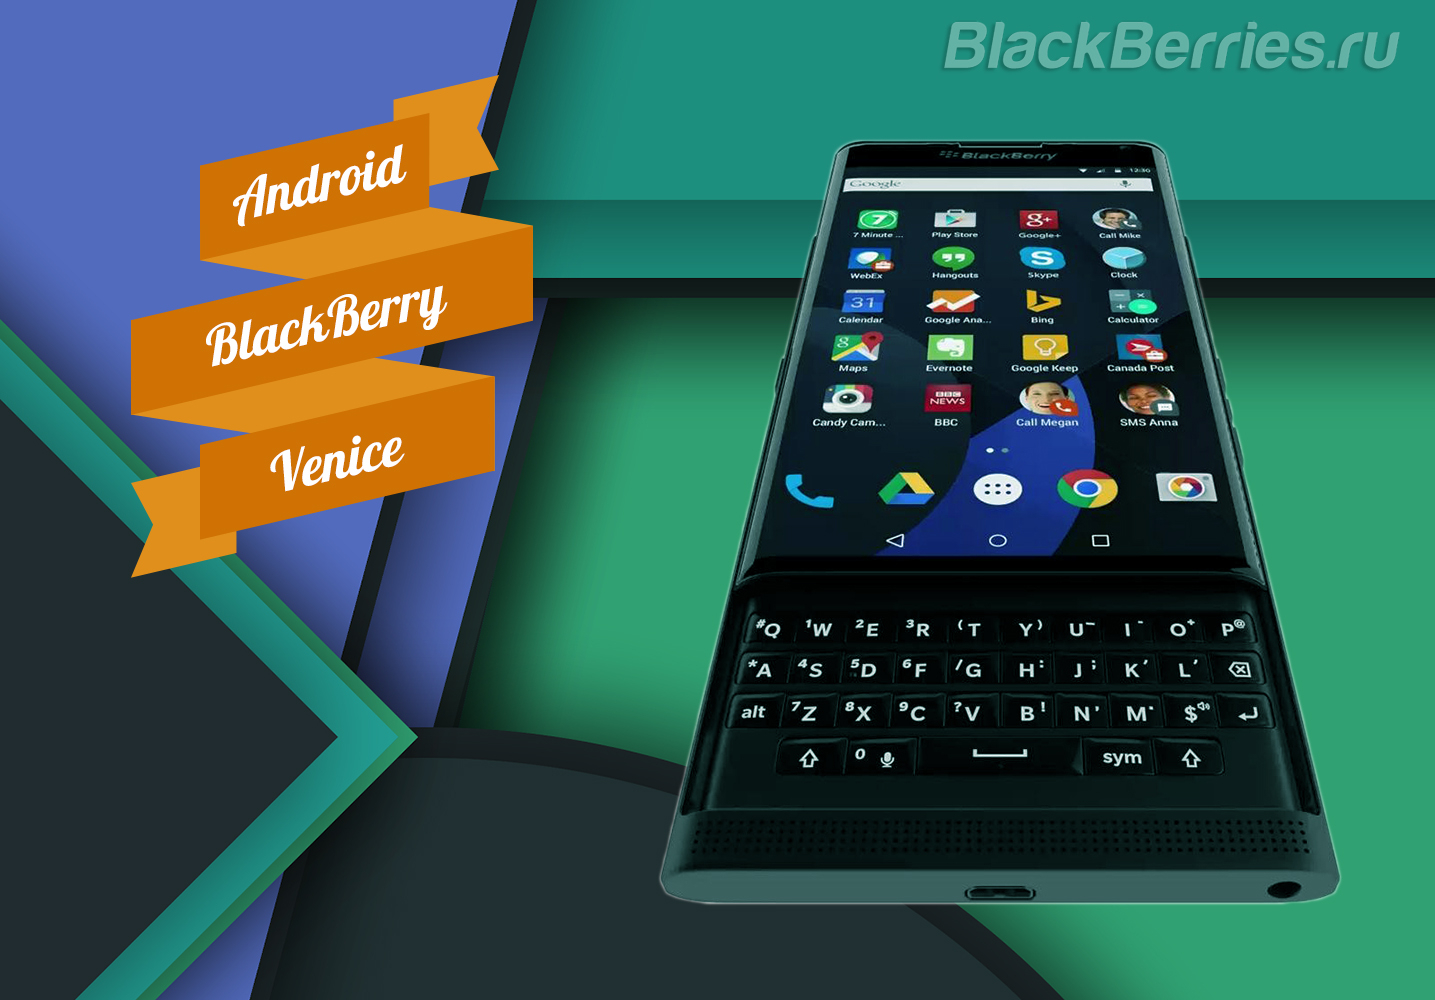 BlackBerry-Venice-1